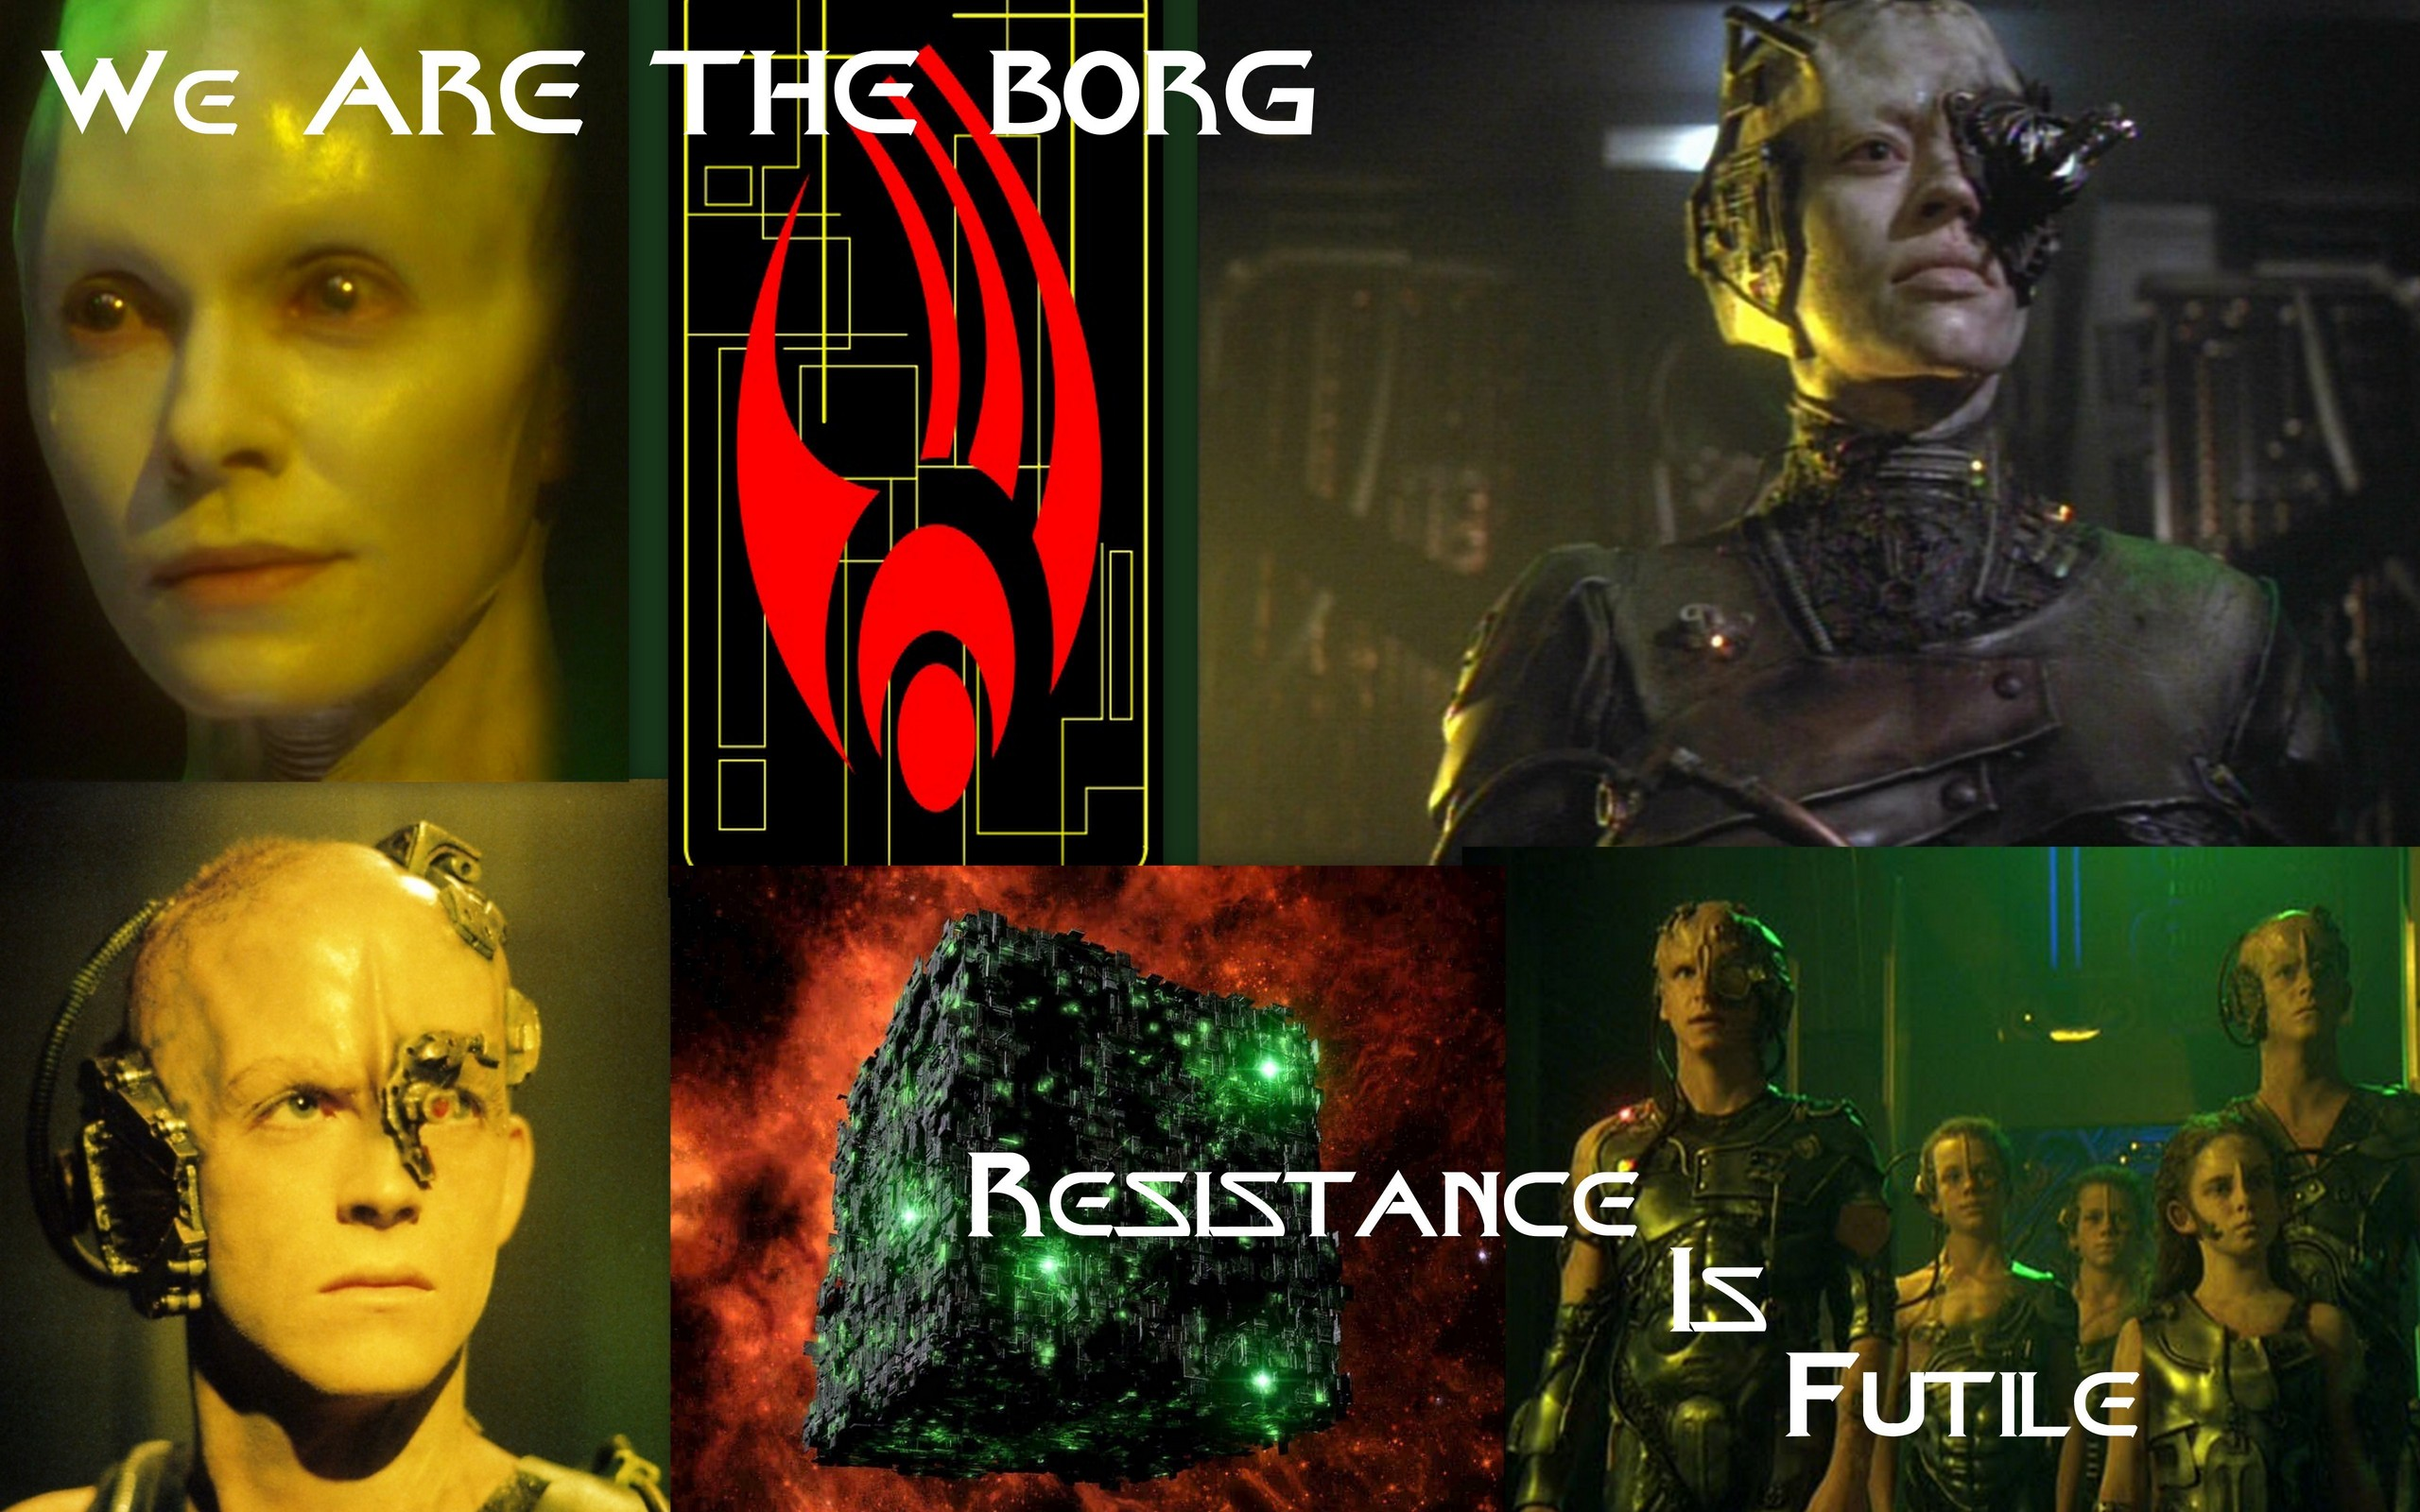 The Borg | Holland's Heroes